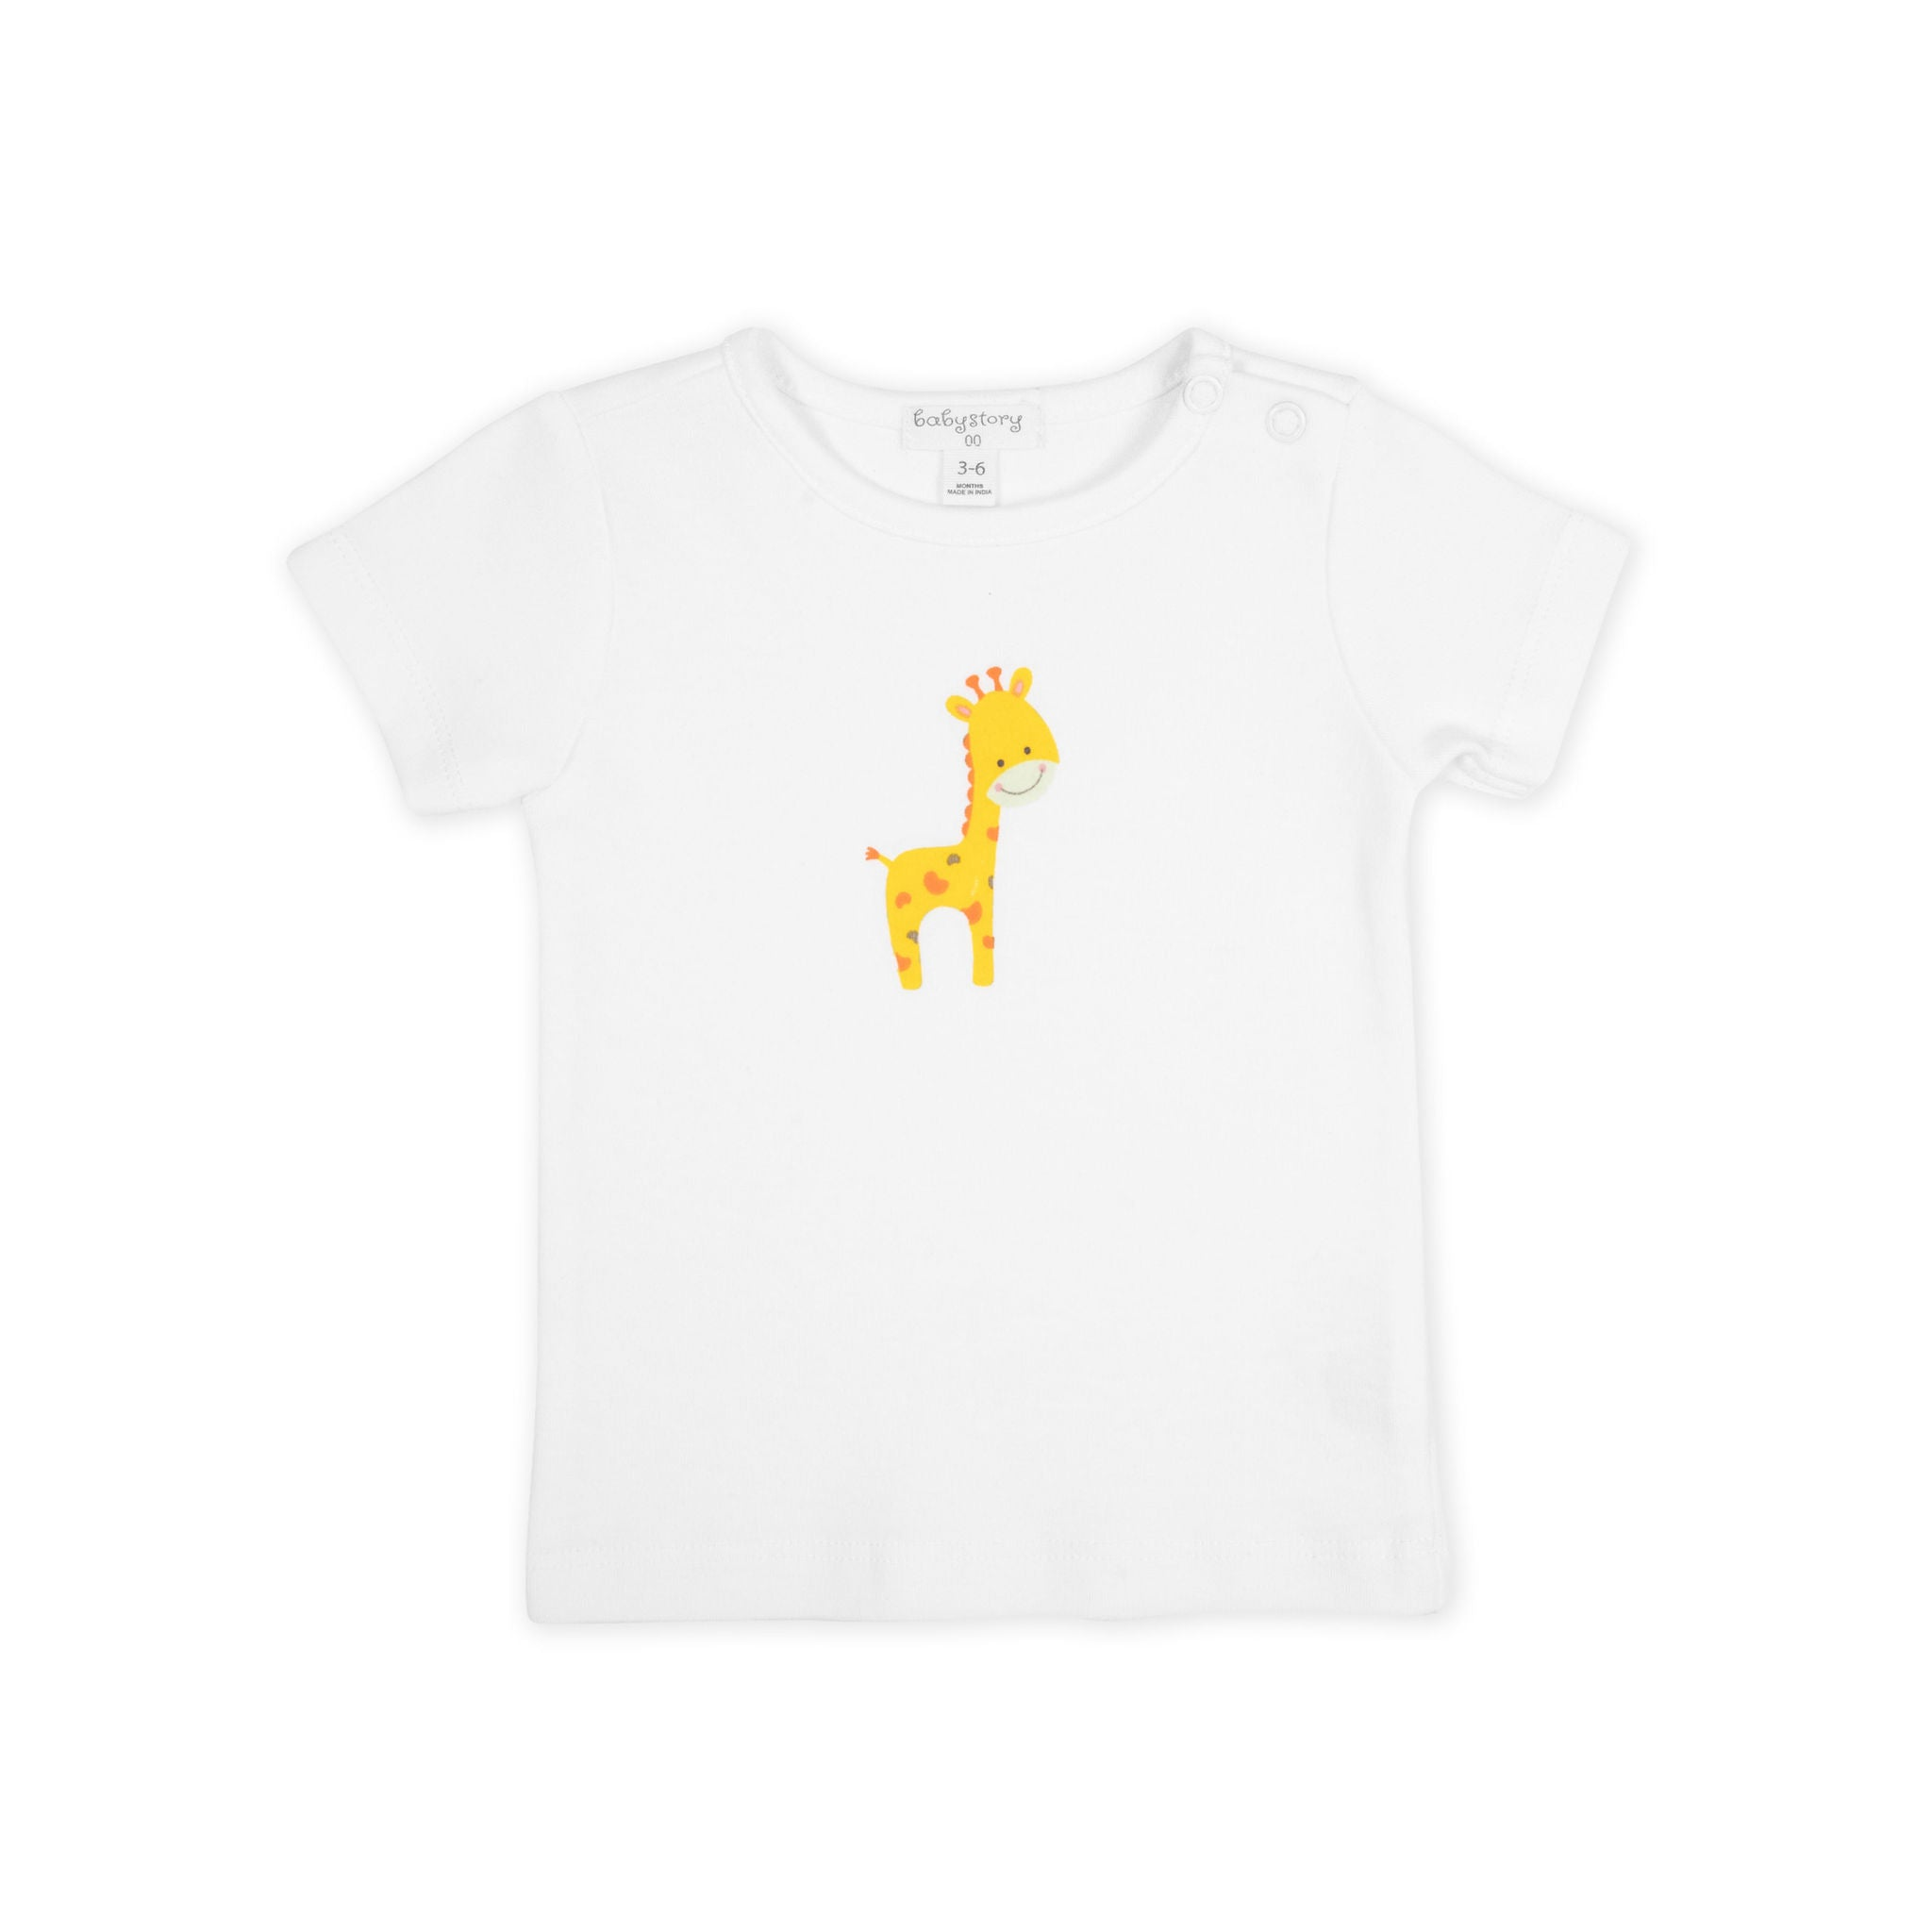 I love Giraffe T-Shirt